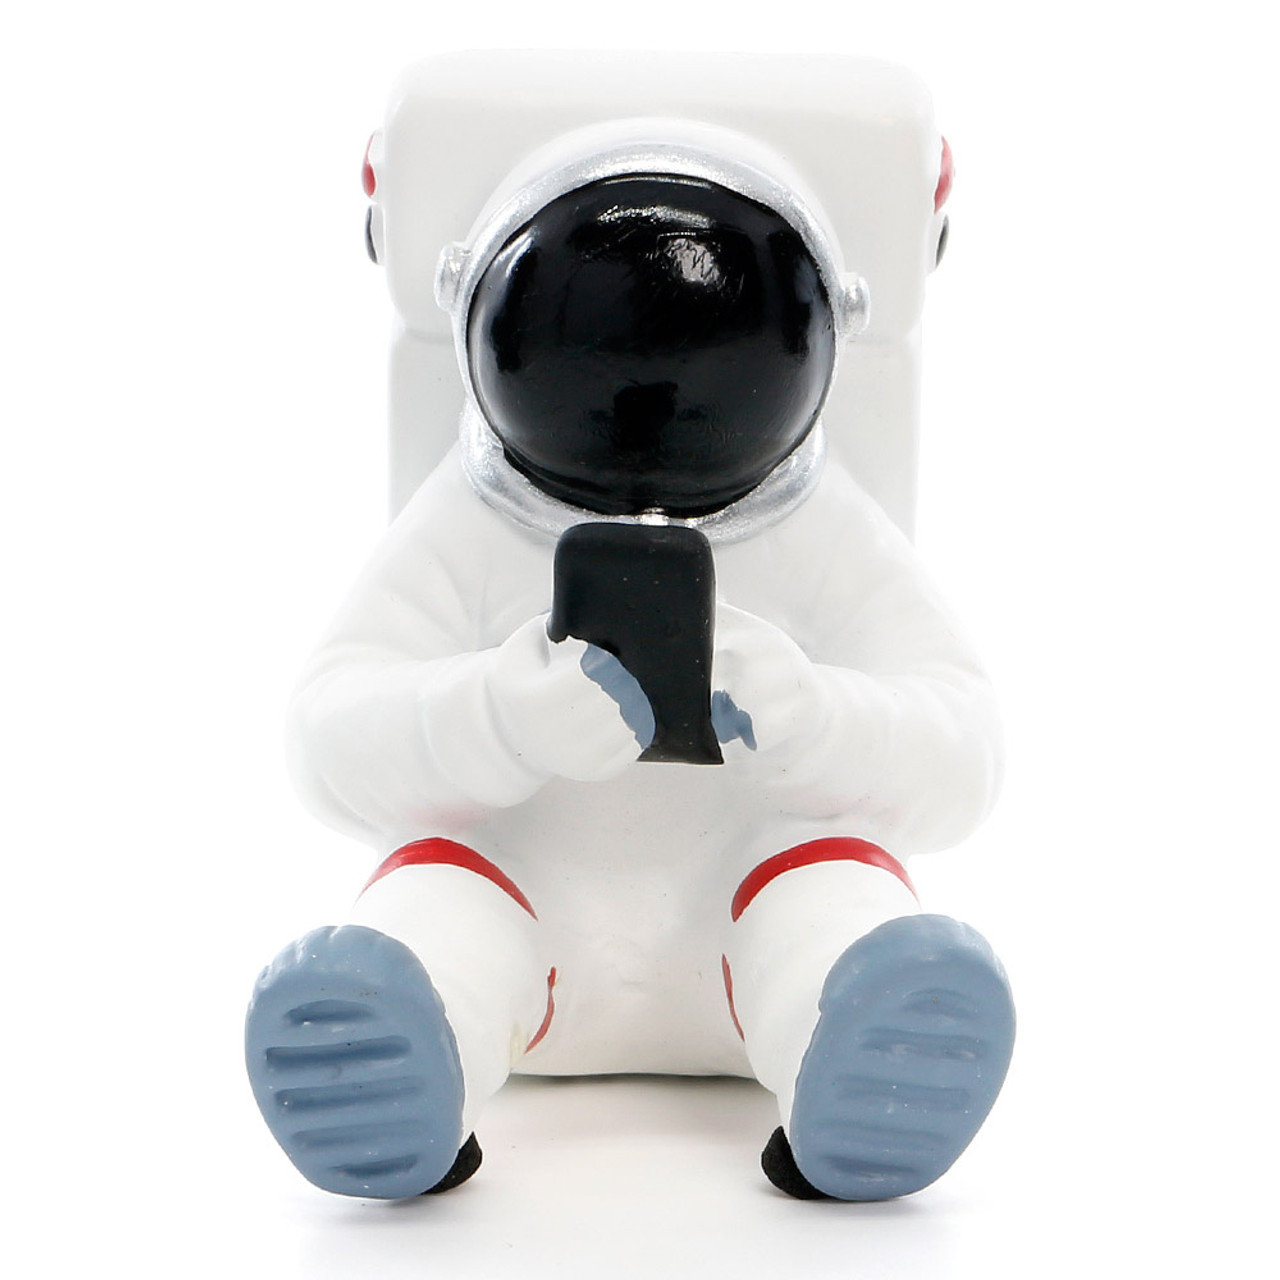 Seto Craft Motif Hand Painting Cellphone / Mobile Device Stand - Astronaut or Spaceman ( Front View )